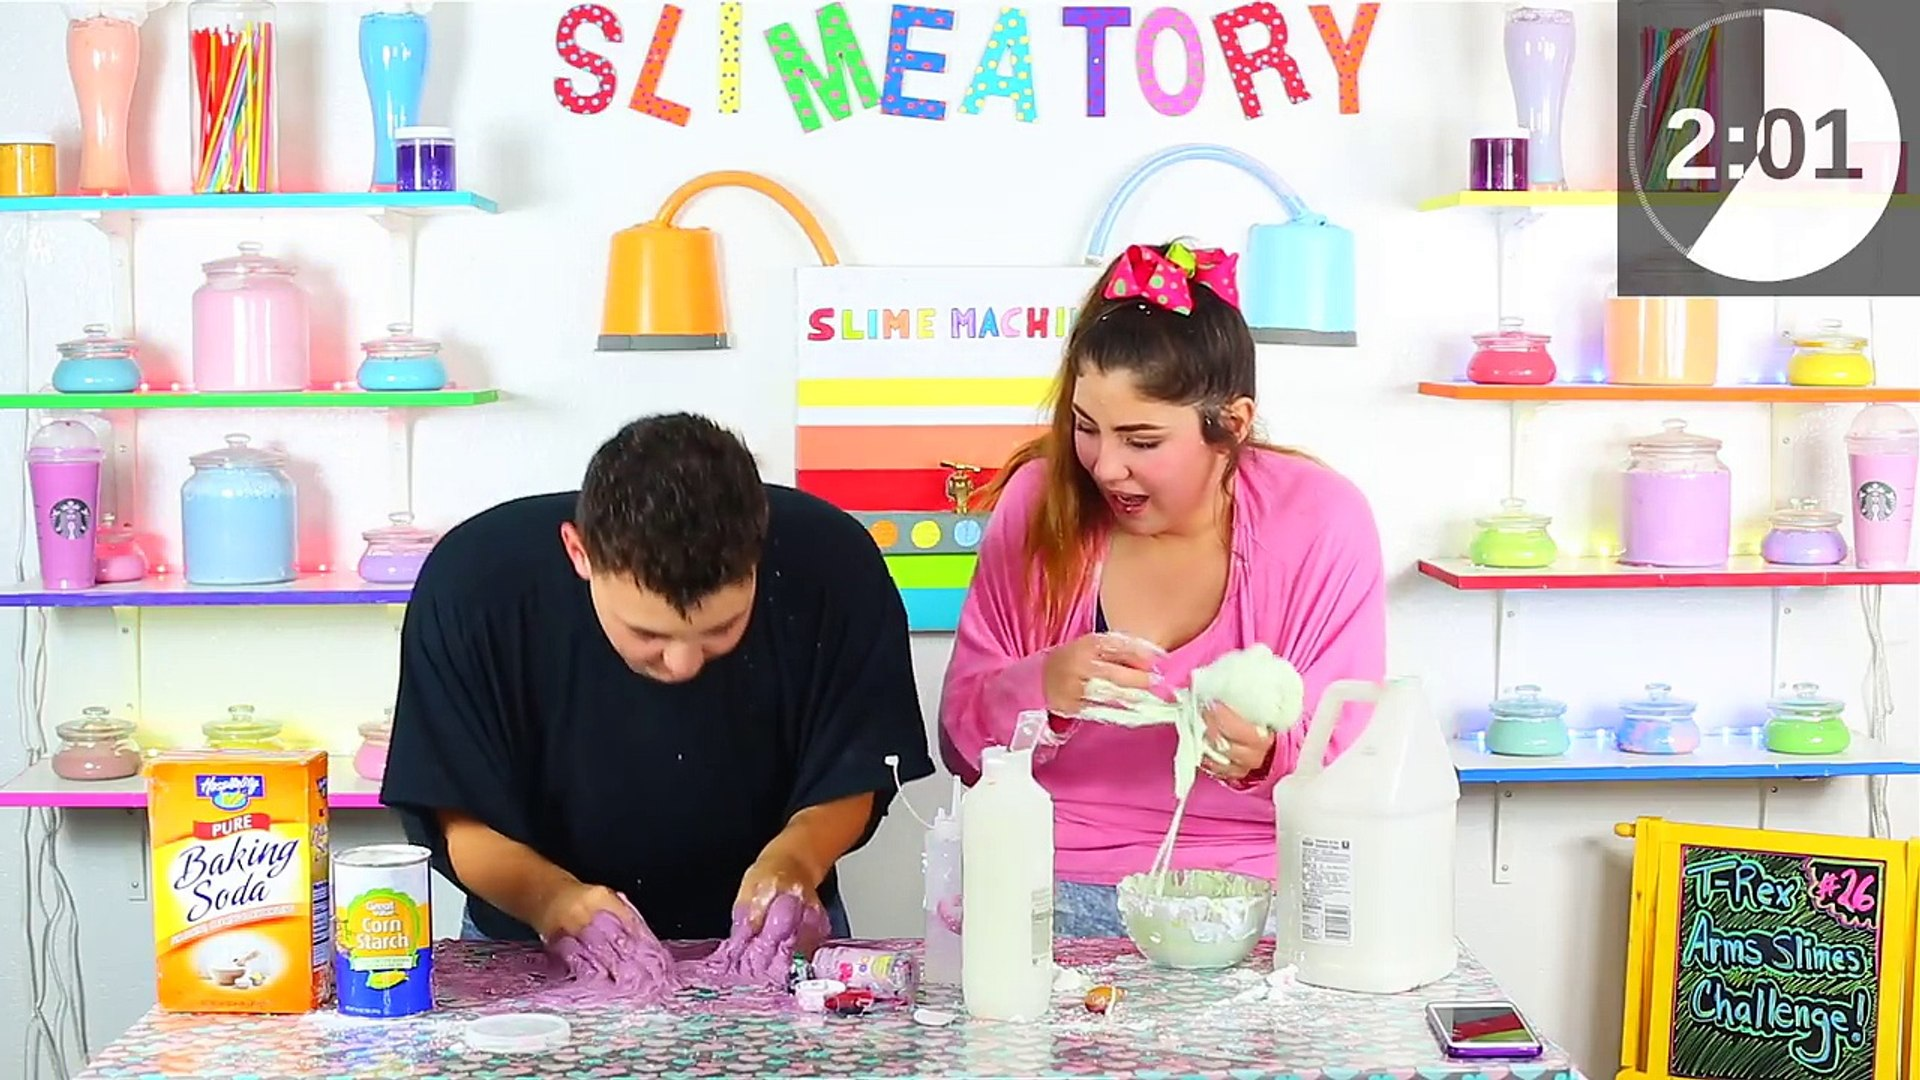 T-REX ARMS SLIME CHALLENGE | MAKING SLIME AS A T-REX | Slimeatory #26